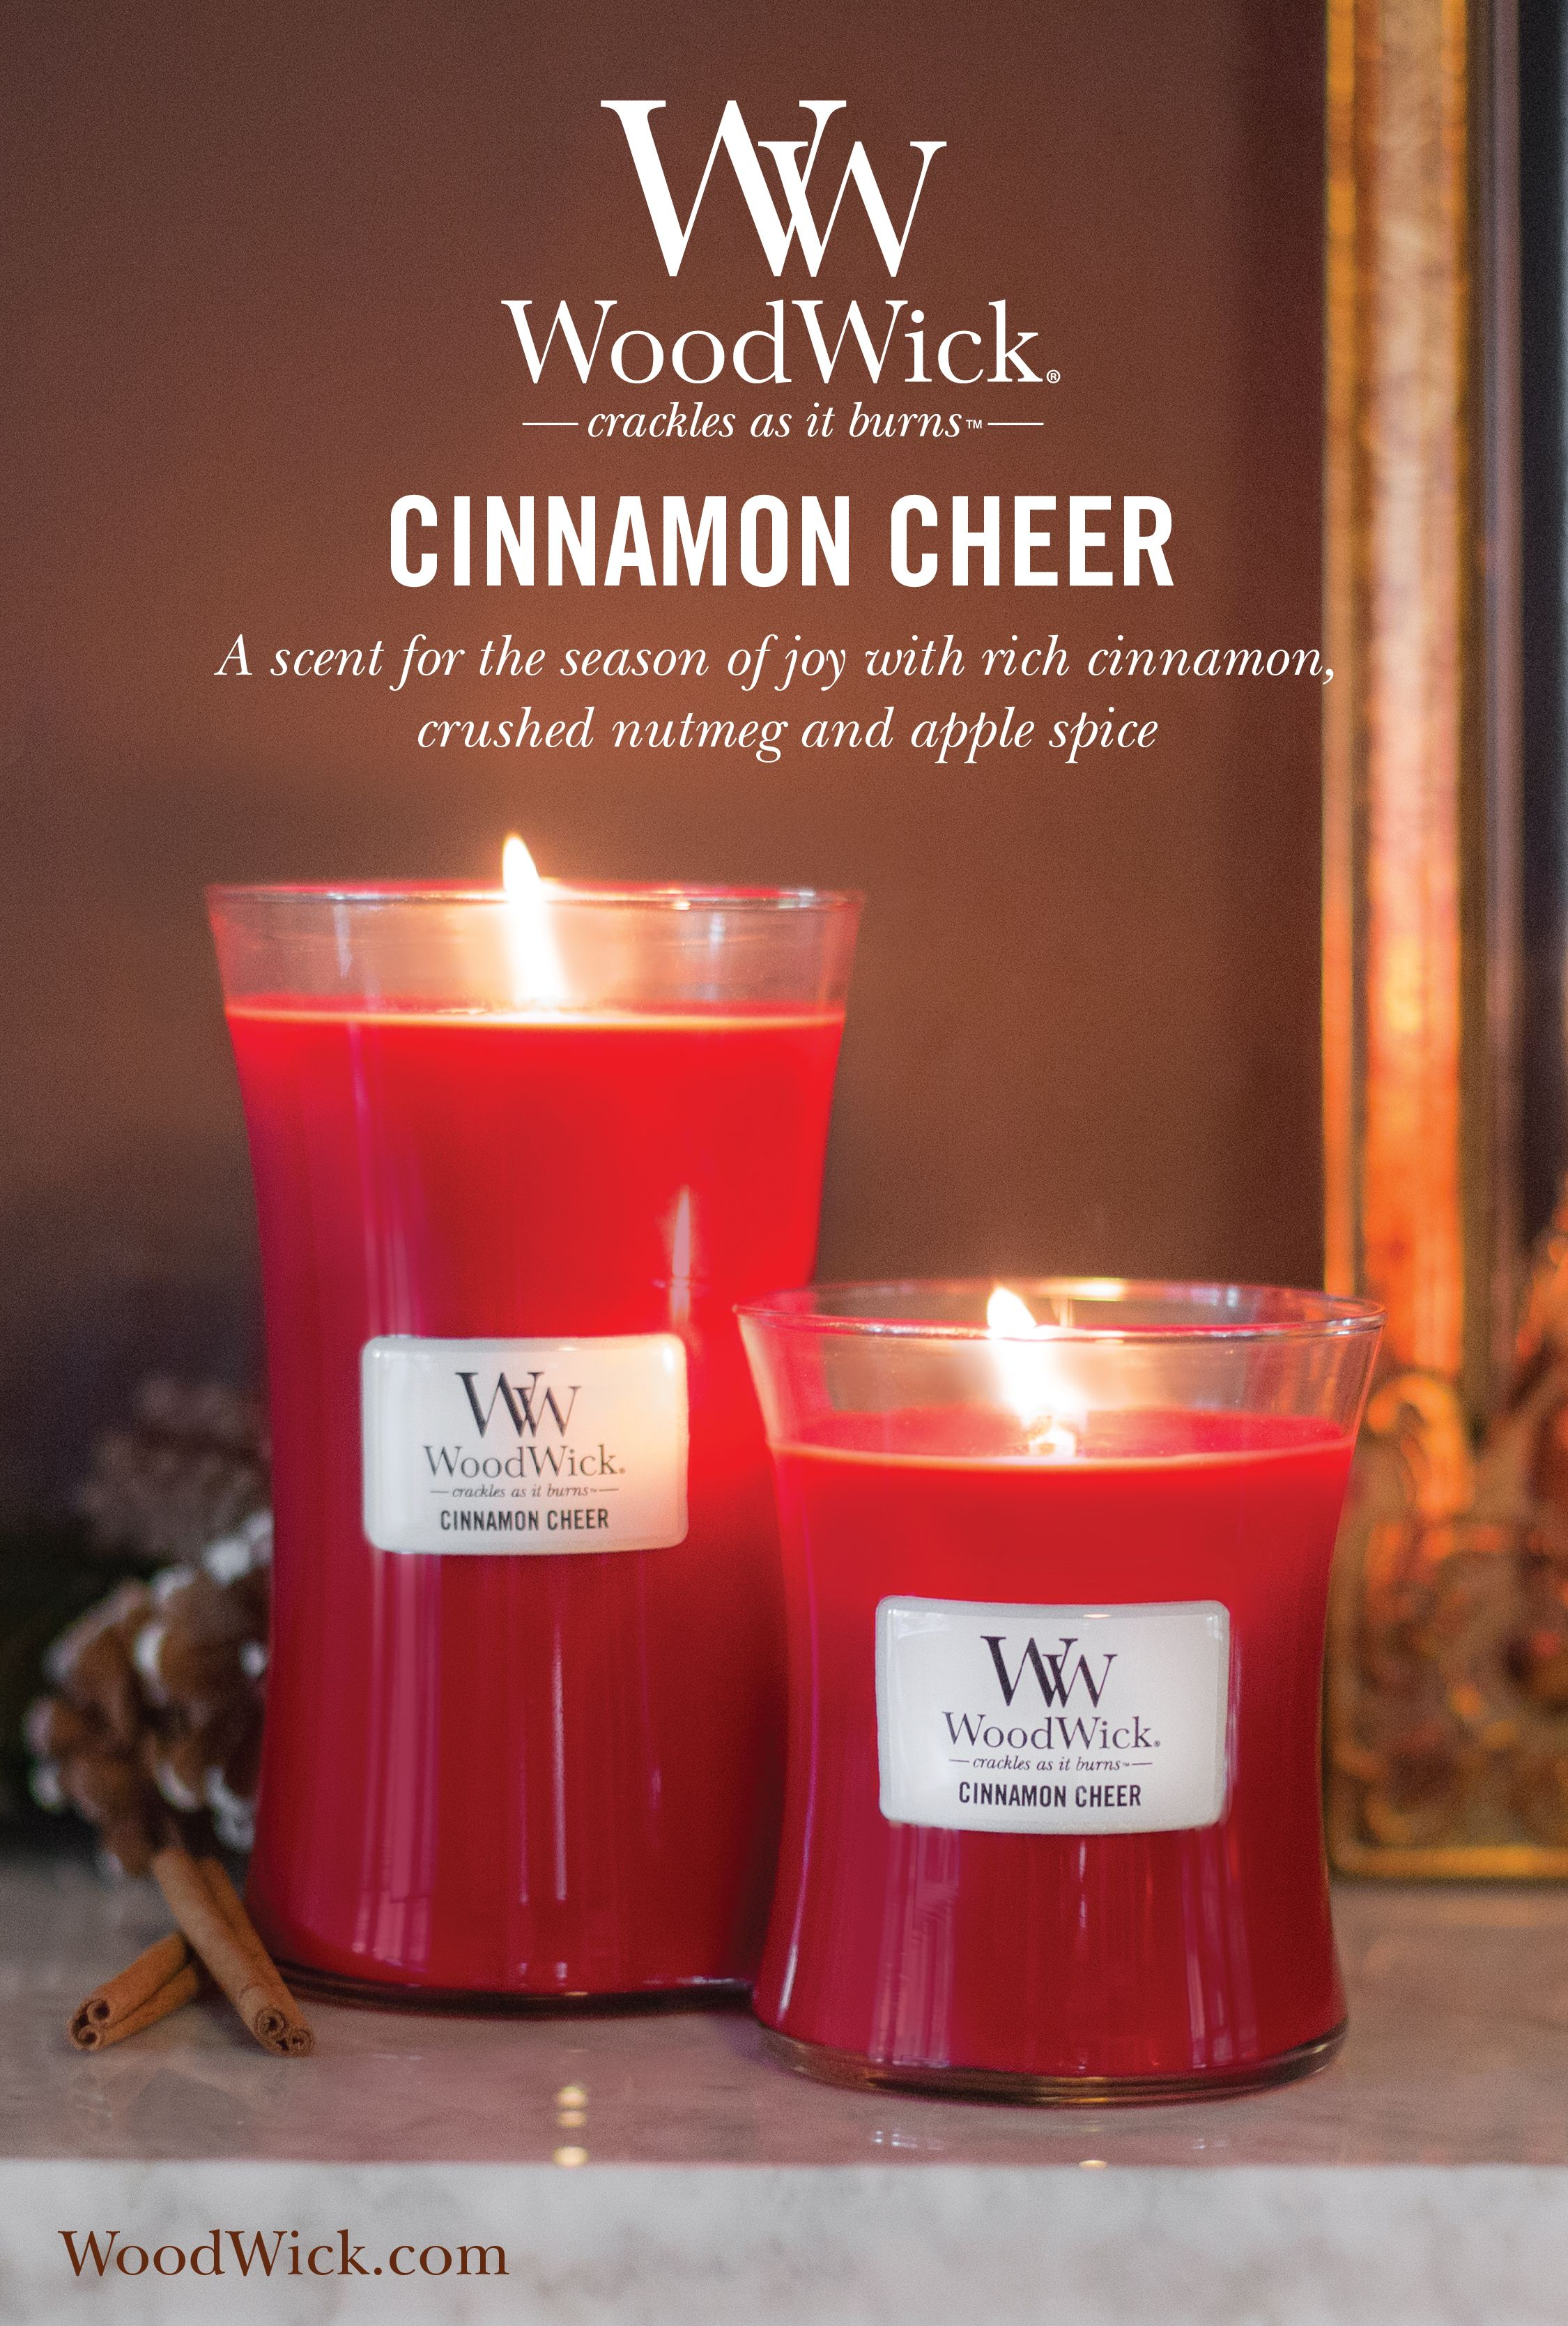 Cinnamon Cheer Makes The Holidays A Little Brighter With The